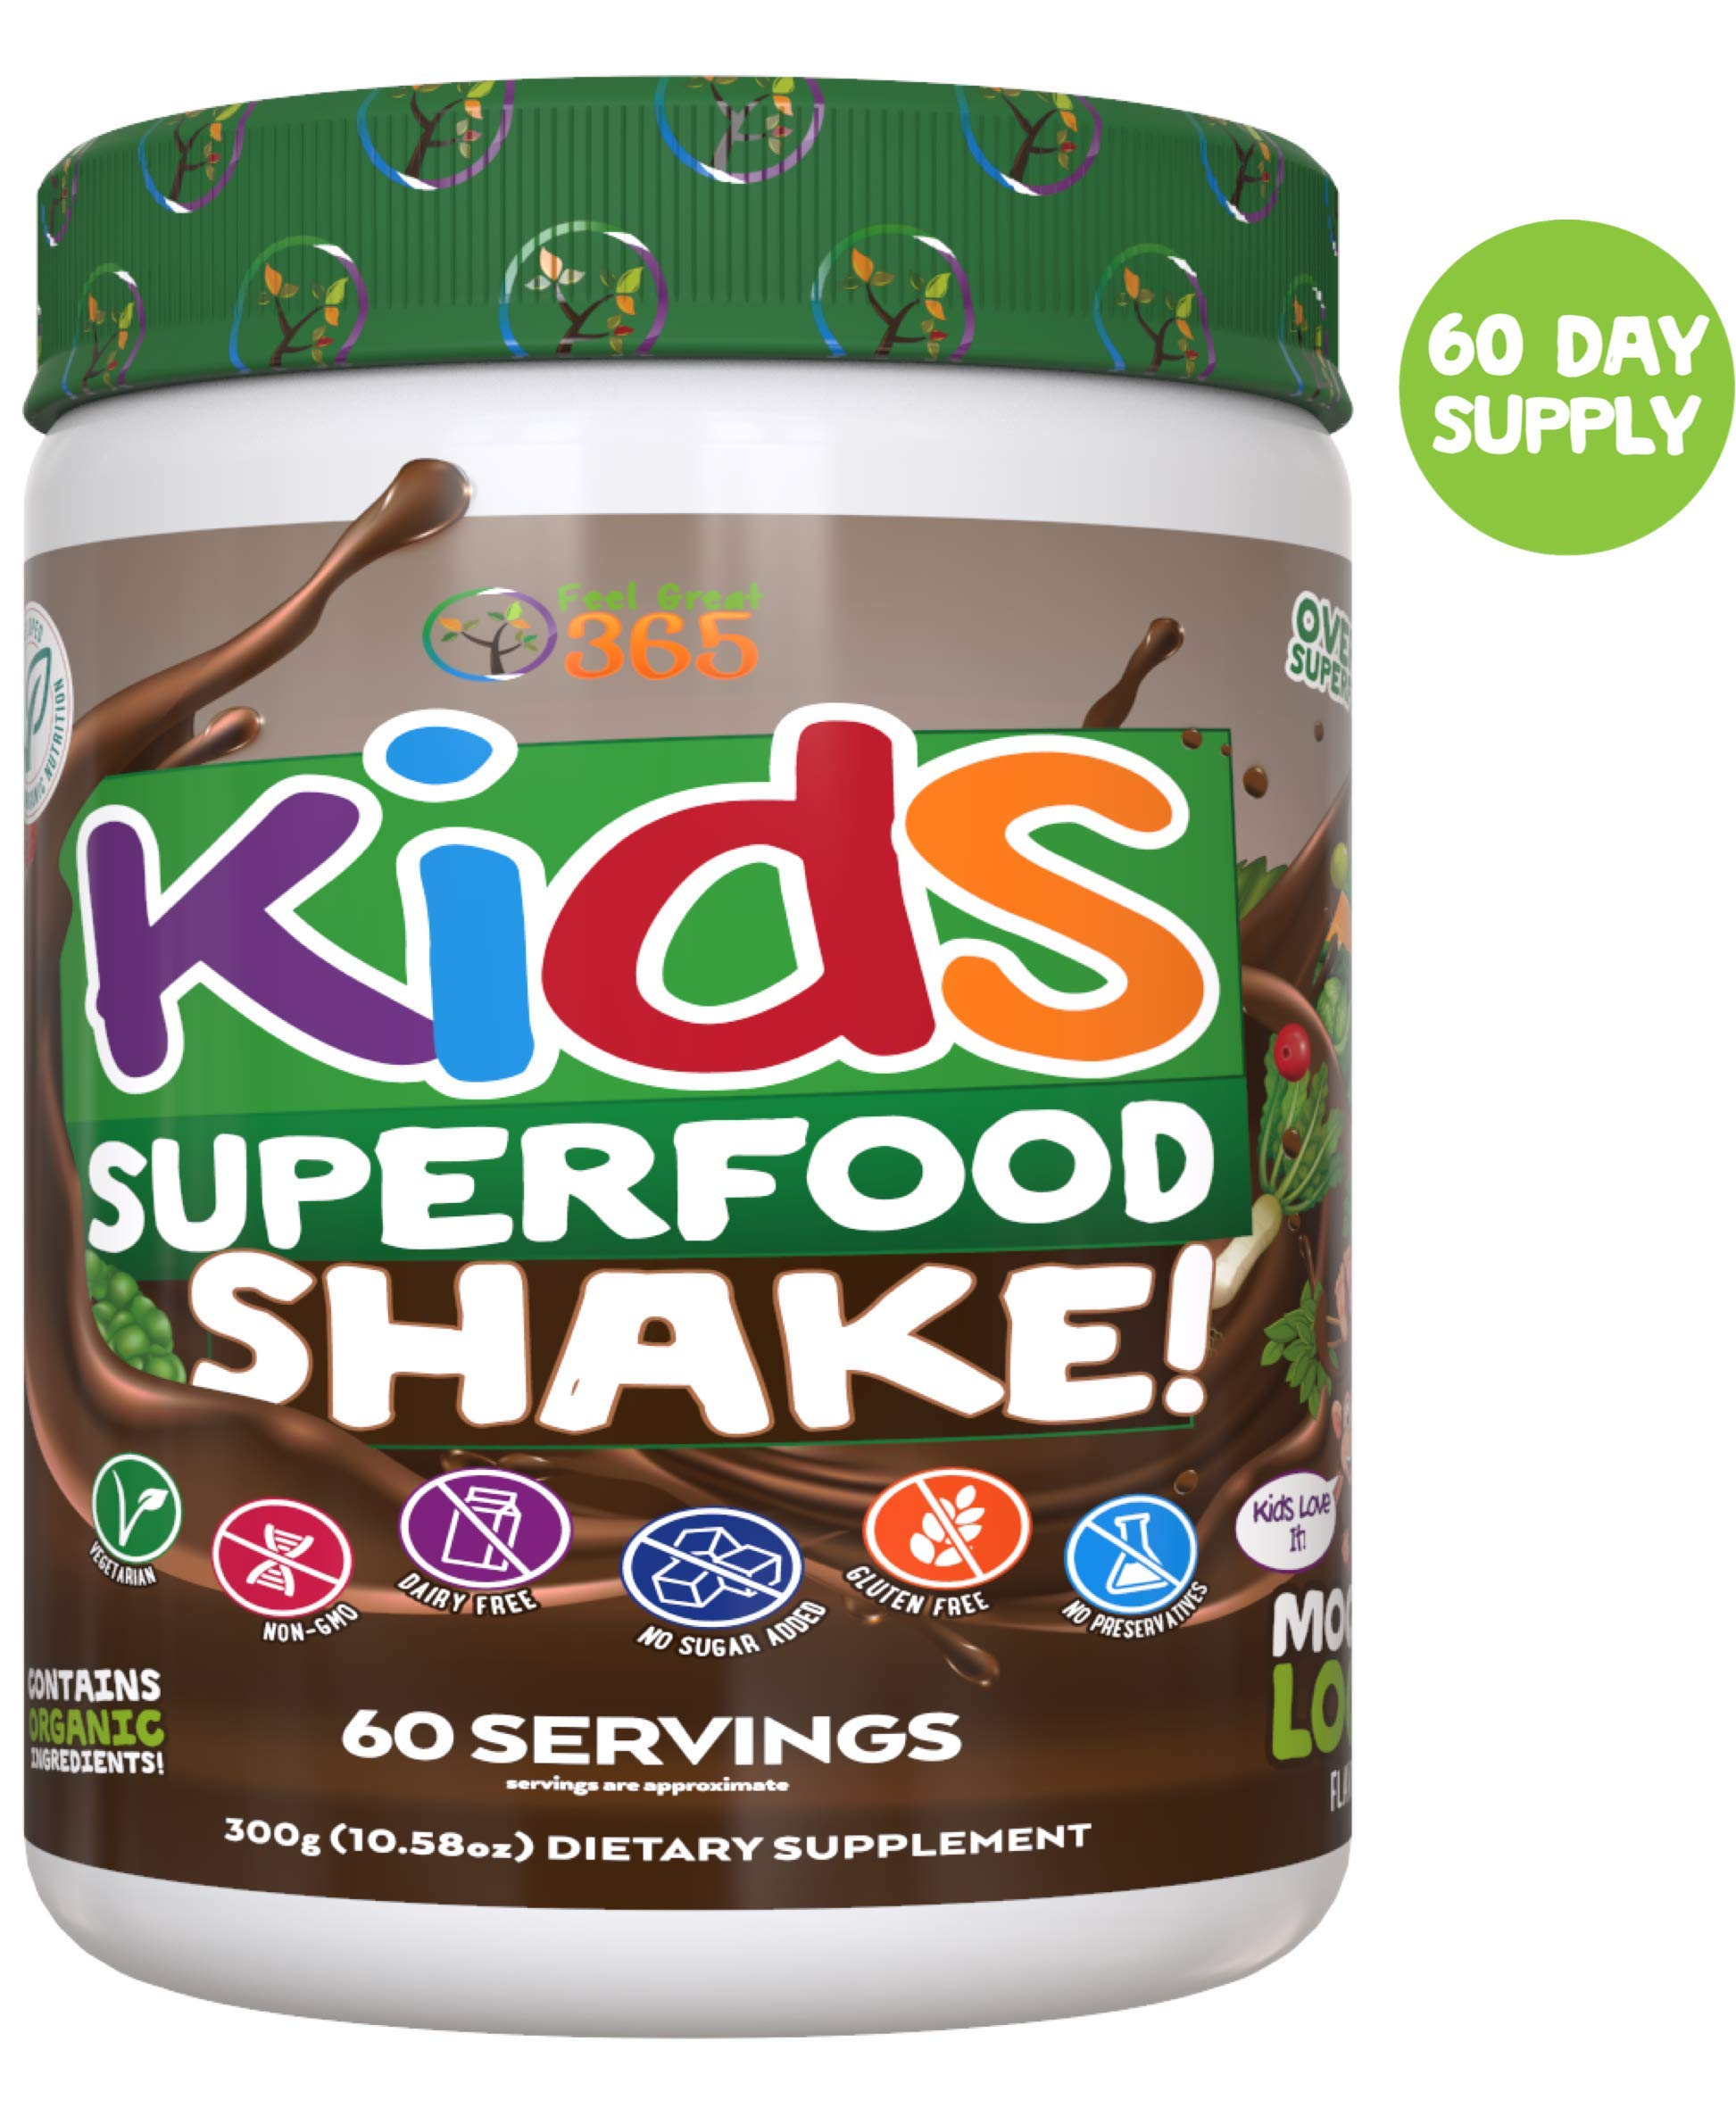 Kids Superfood Shake Mocha Greens Powder by Feel Great 365 (60 Servings), 100% Non-GMO, Made with Real Fruits & Vegetables, Multivitamin, Vegan Blend. Helps Build Immunity and Big Brains. by Feel Great 365